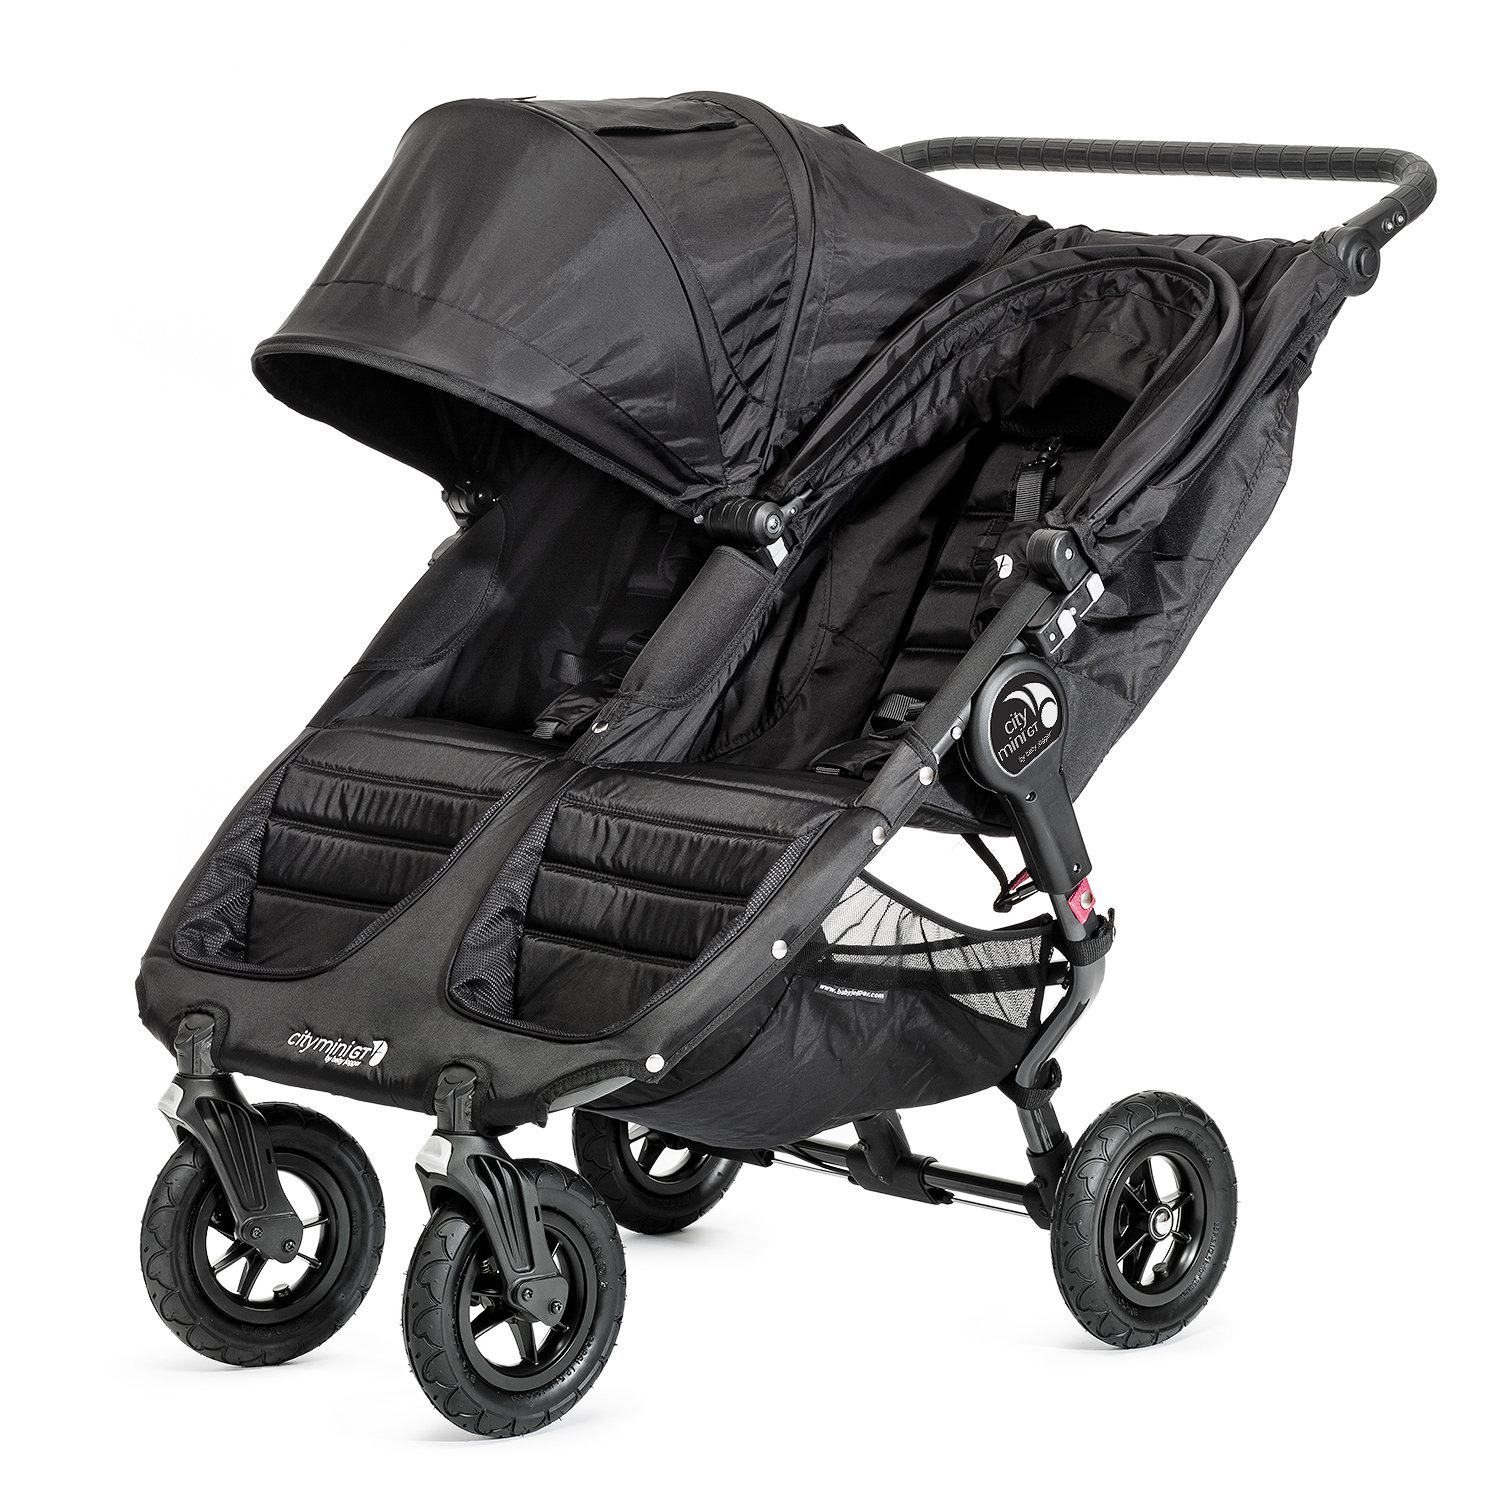 Baby Jogger City Mini Double Stroller Review  sc 1 st  Double Stroller & Jogger City Mini Double Stroller Review